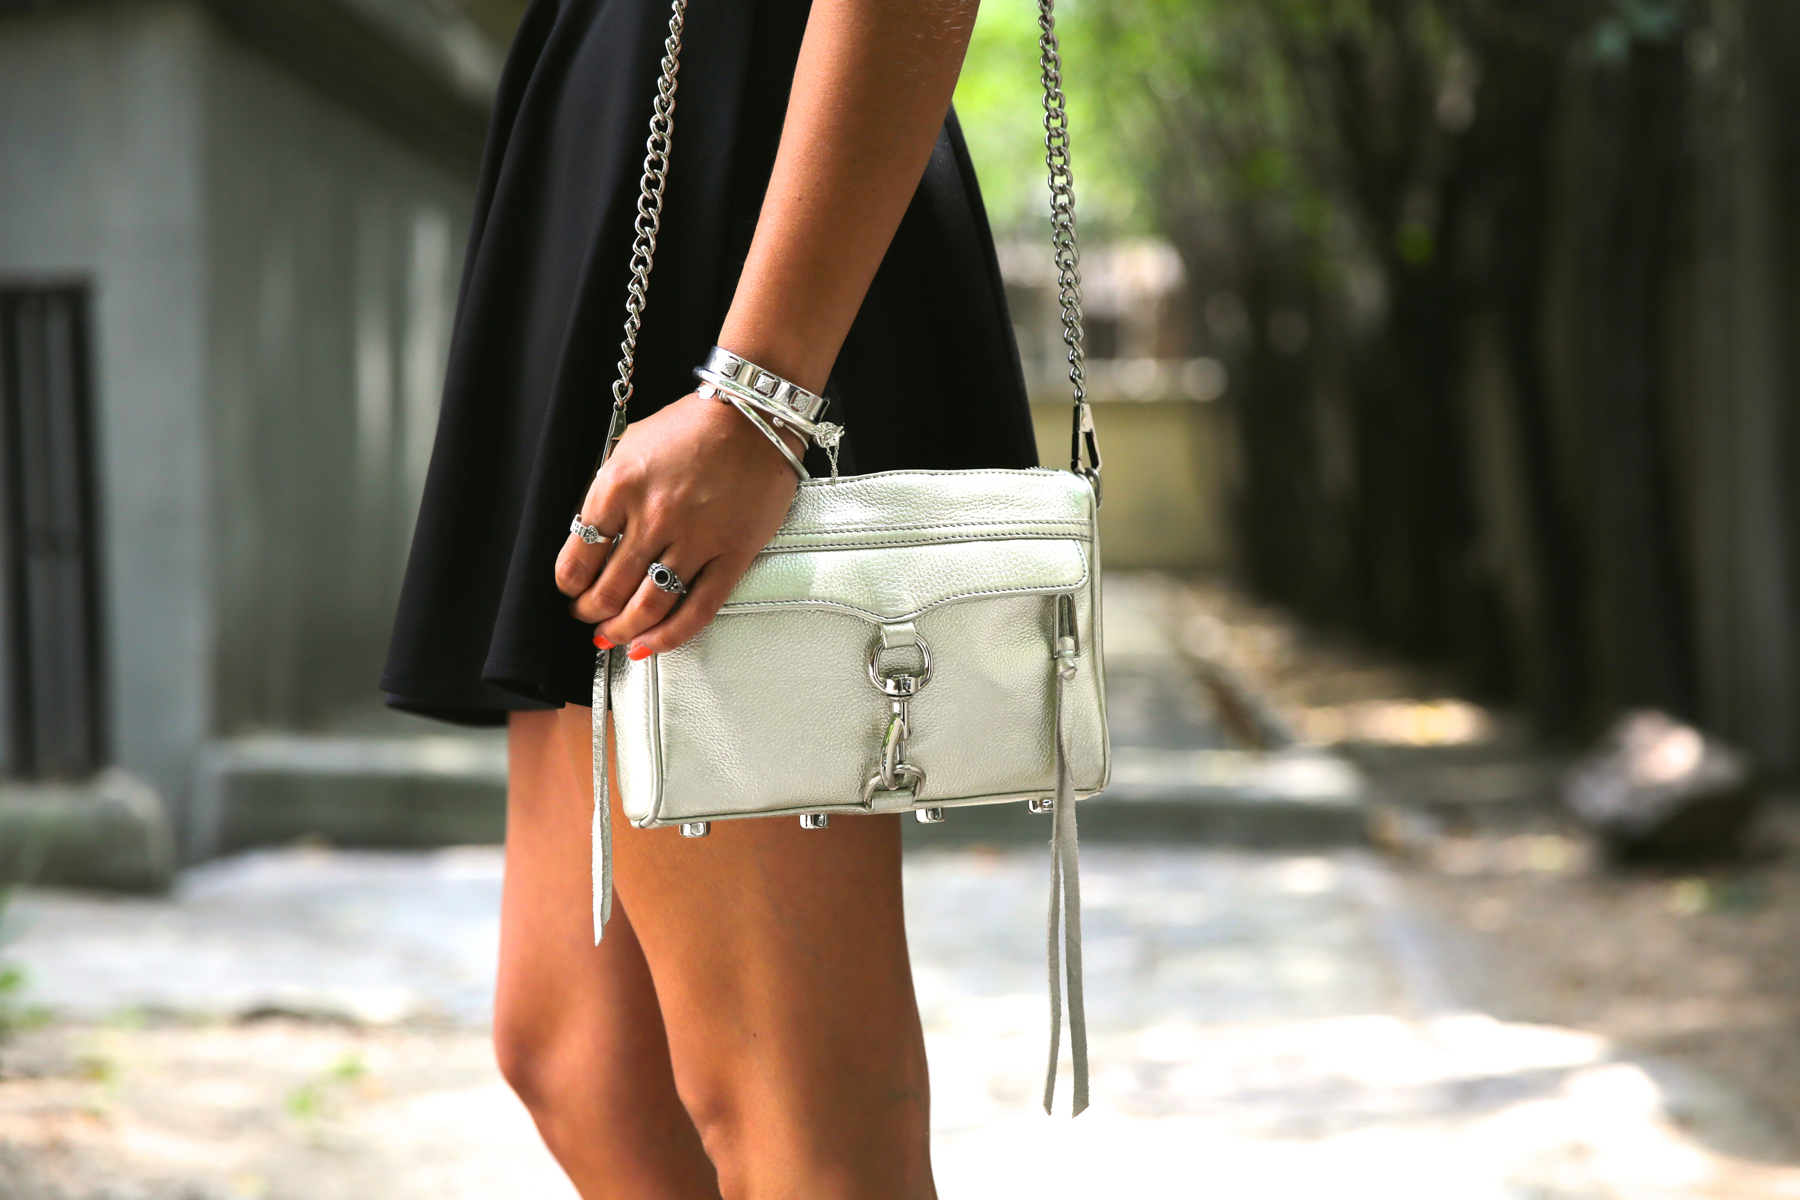 trendy_taste-look-outfit-street_style-ootd-blog-blogger-fashion_spain-moda_españa-natalia_cabezas-rocky-botas_moteras-steve_madden-silver_bag-bolso_plata-transition-vestido_rayas-striped_dress-3